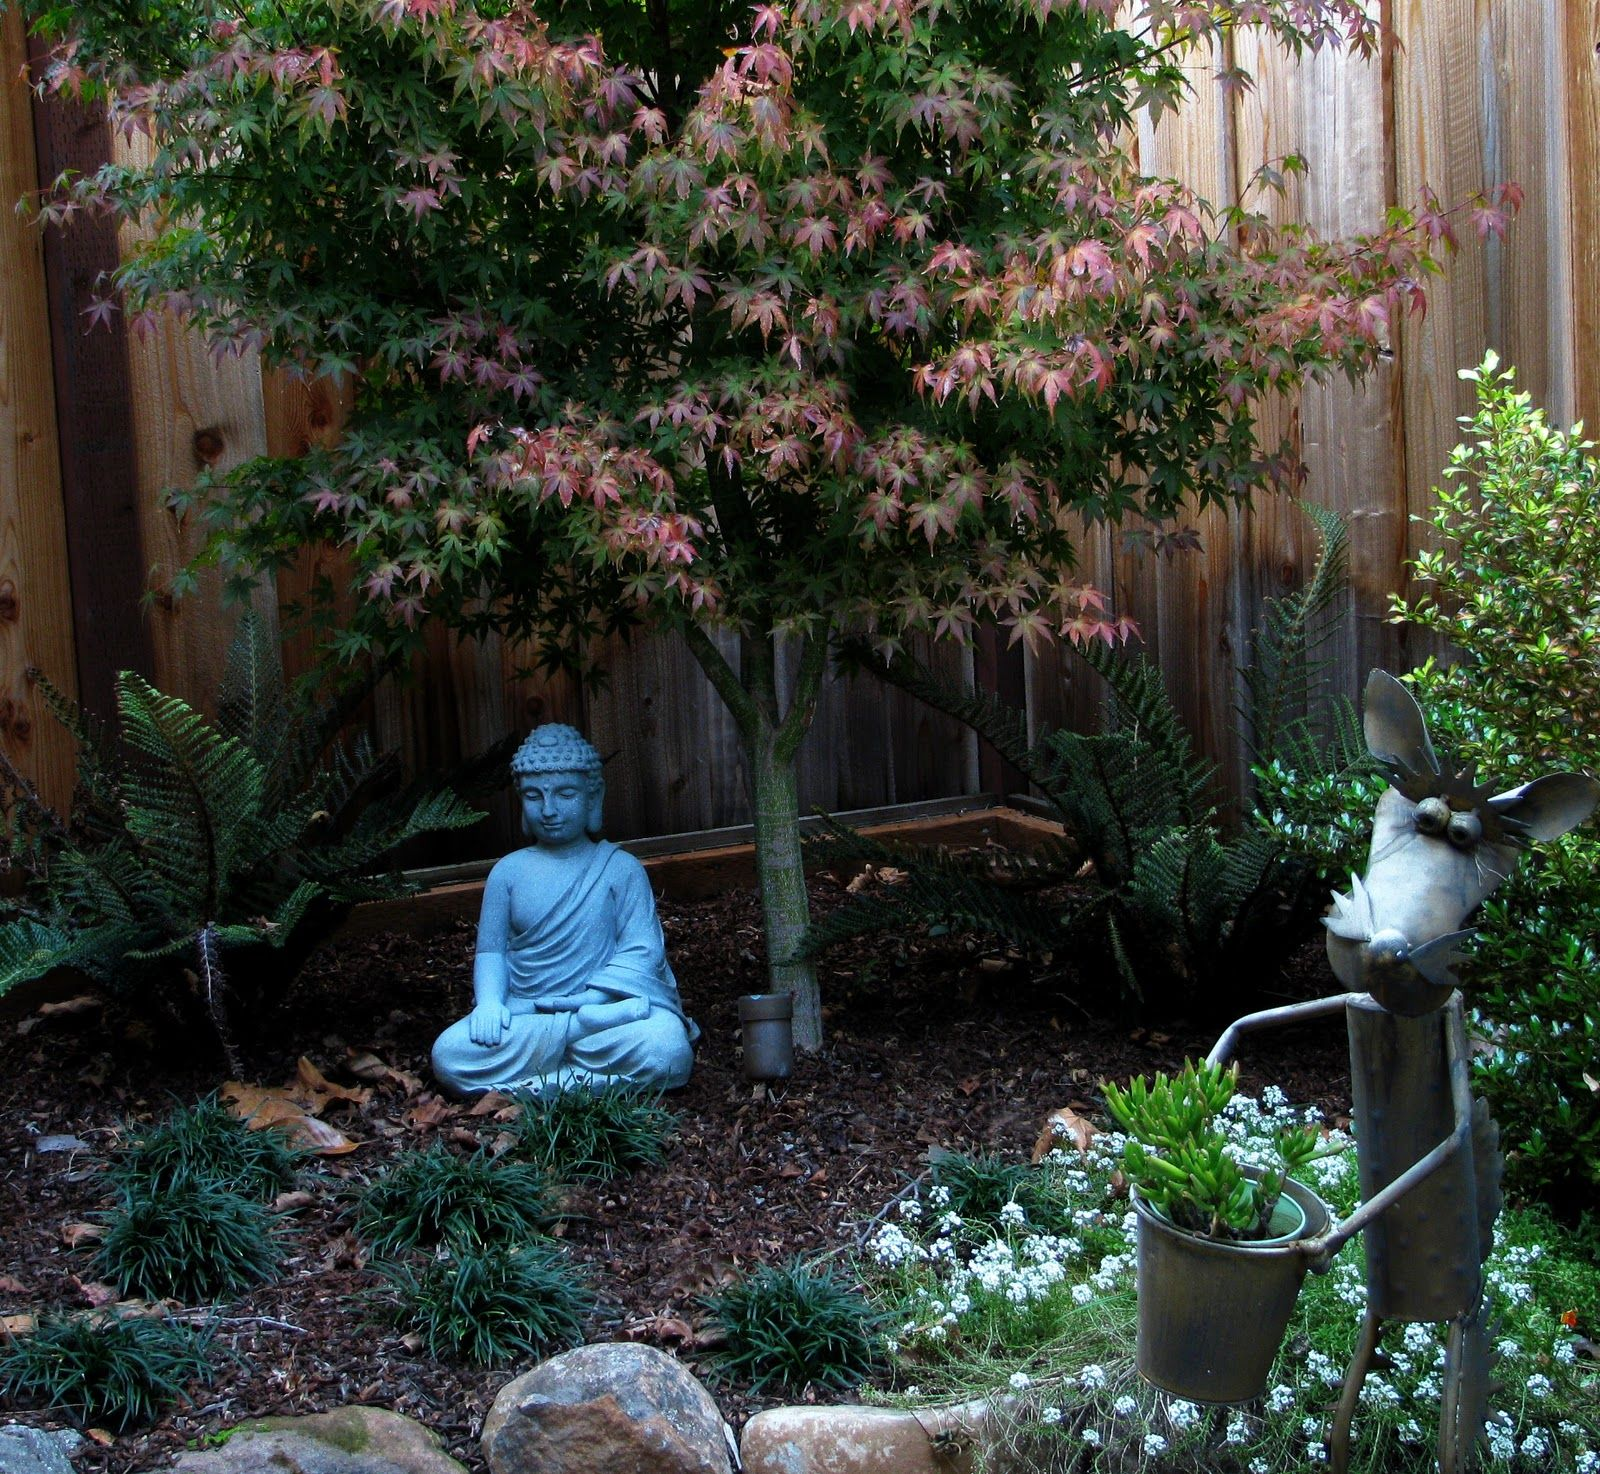 18 Relaxing Japanese Inspired Front Yard Décor Ideas: Small Spaces Already Feel More